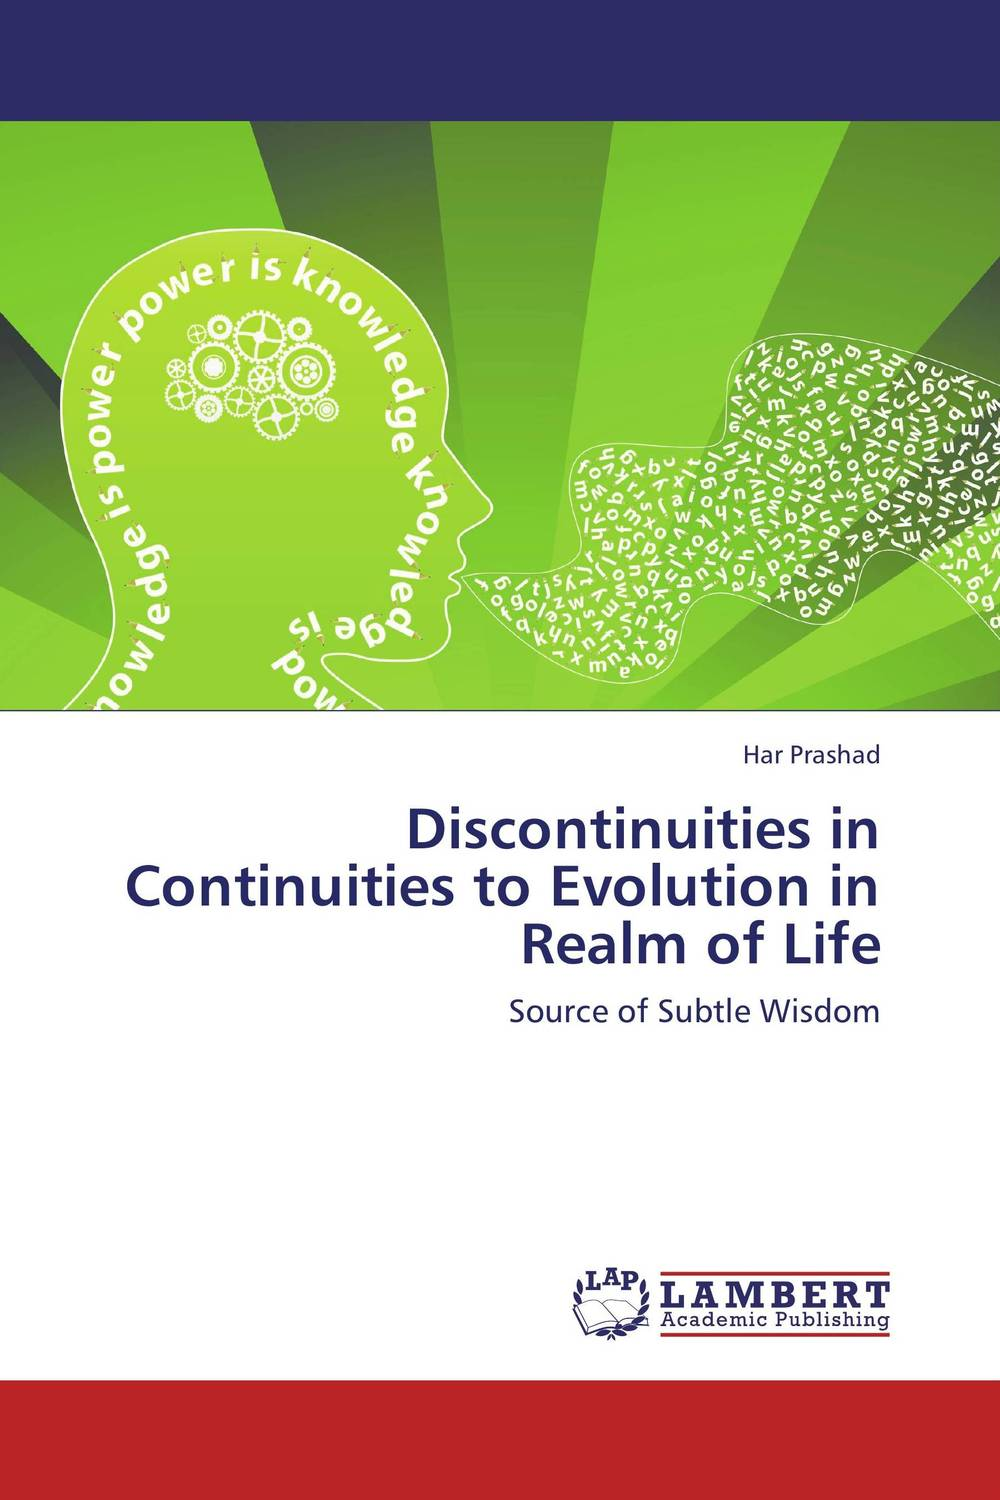 Discontinuities in Continuities to Evolution in Realm of Life robots in space – technology evolution and interplanetary travel